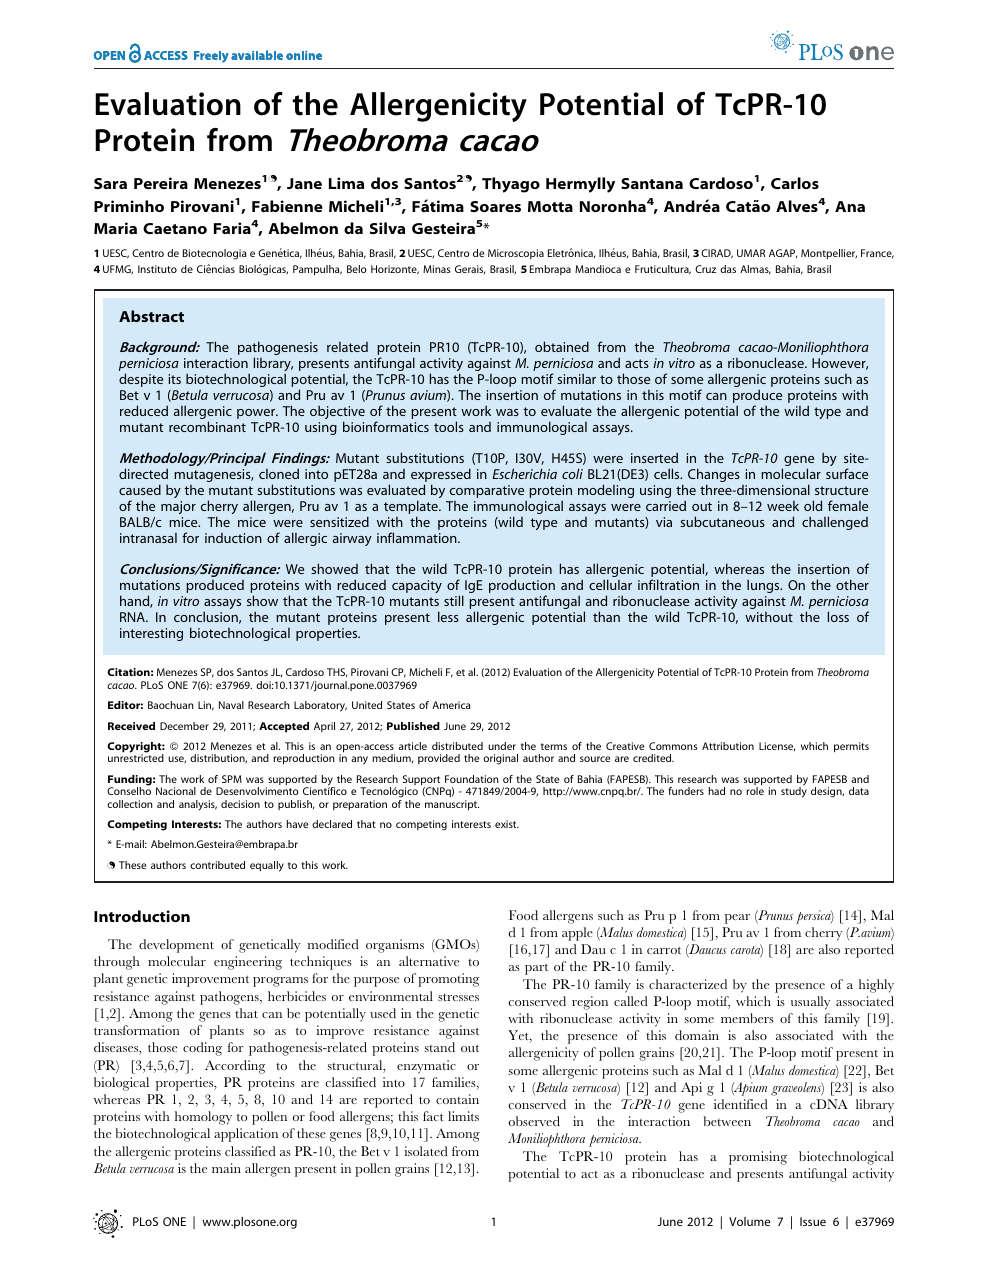 Evaluation of the Allergenicity Potential of TcPR-10 Protein